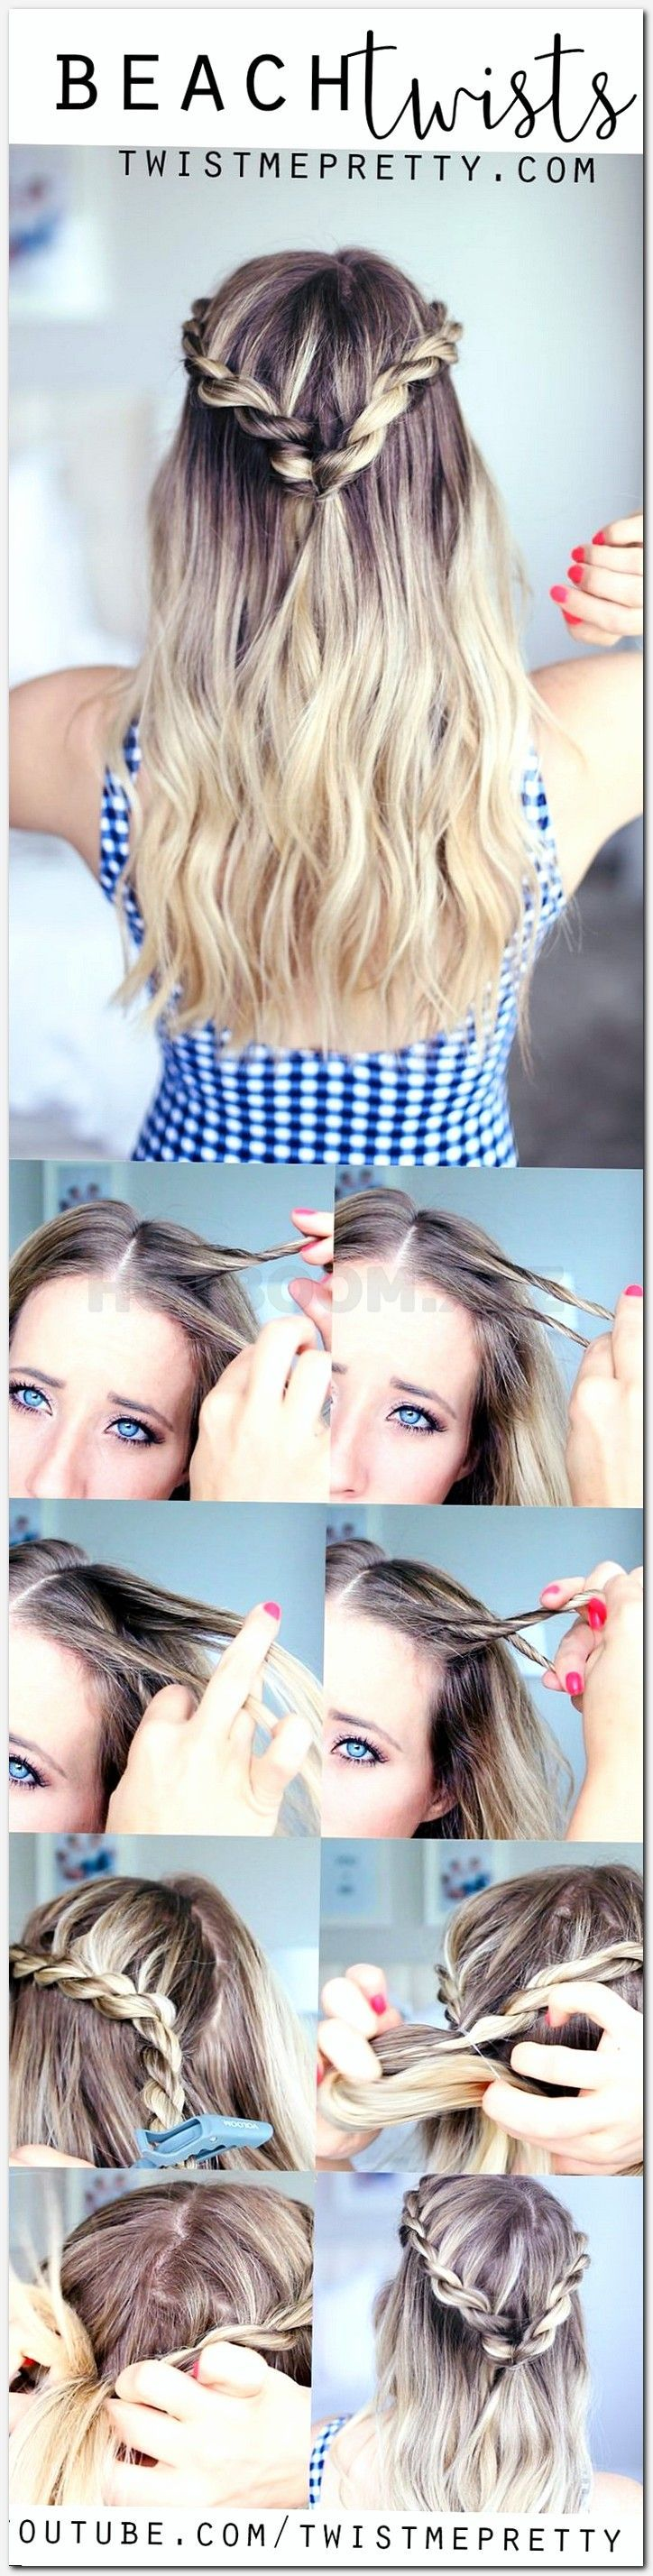 simple medium length hairstyles, fast cute easy hairstyles, mens top haircuts, modern haircuts, hot braid styles, best wavy hairstyles, easy upstyles for long hair, short hairstyles com, bride and bridesmaid hair, , shoulder length haircut styles, easy h